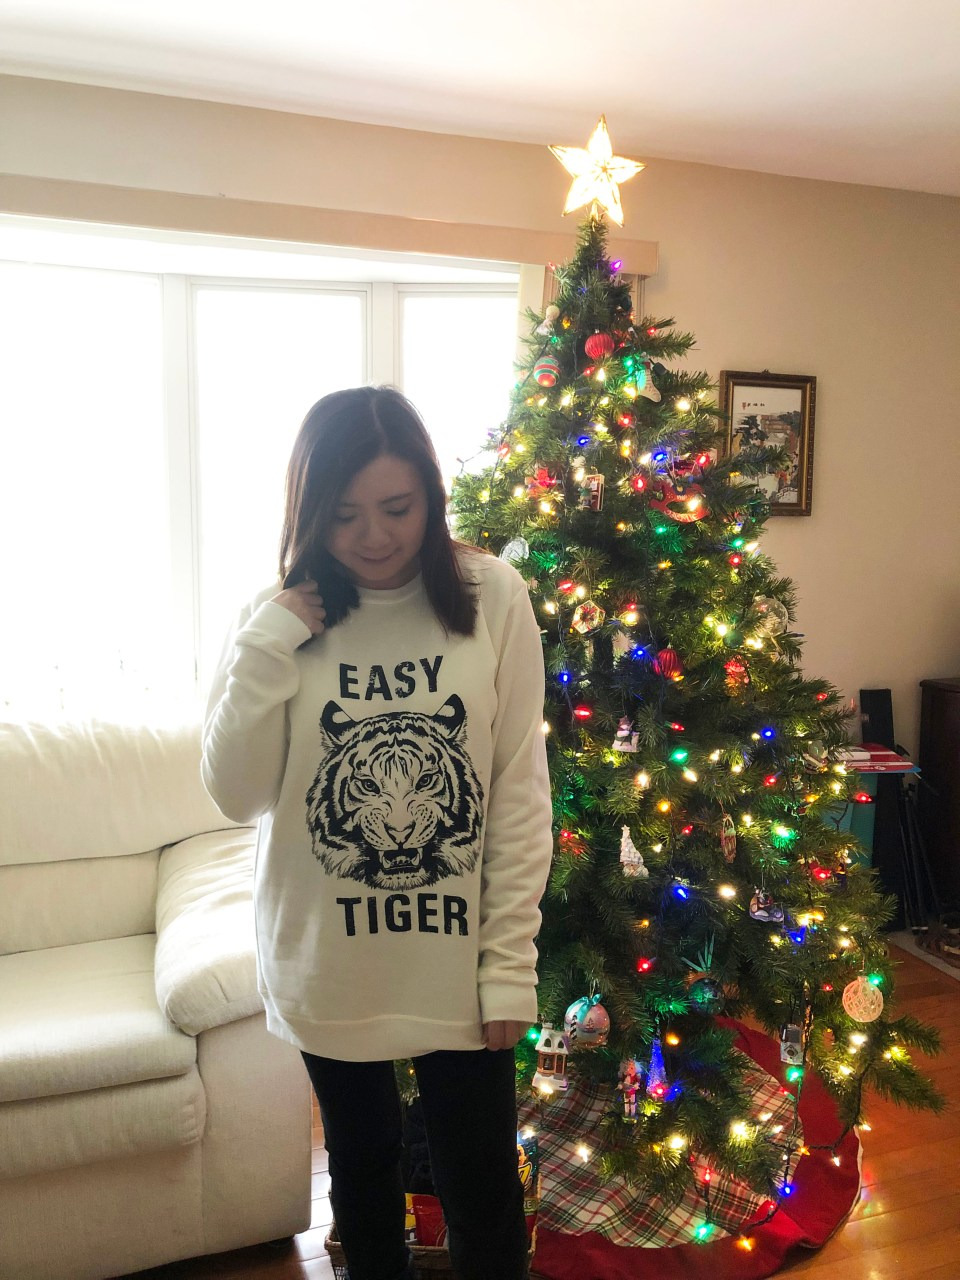 Easy Tiger Sweatshirt 4